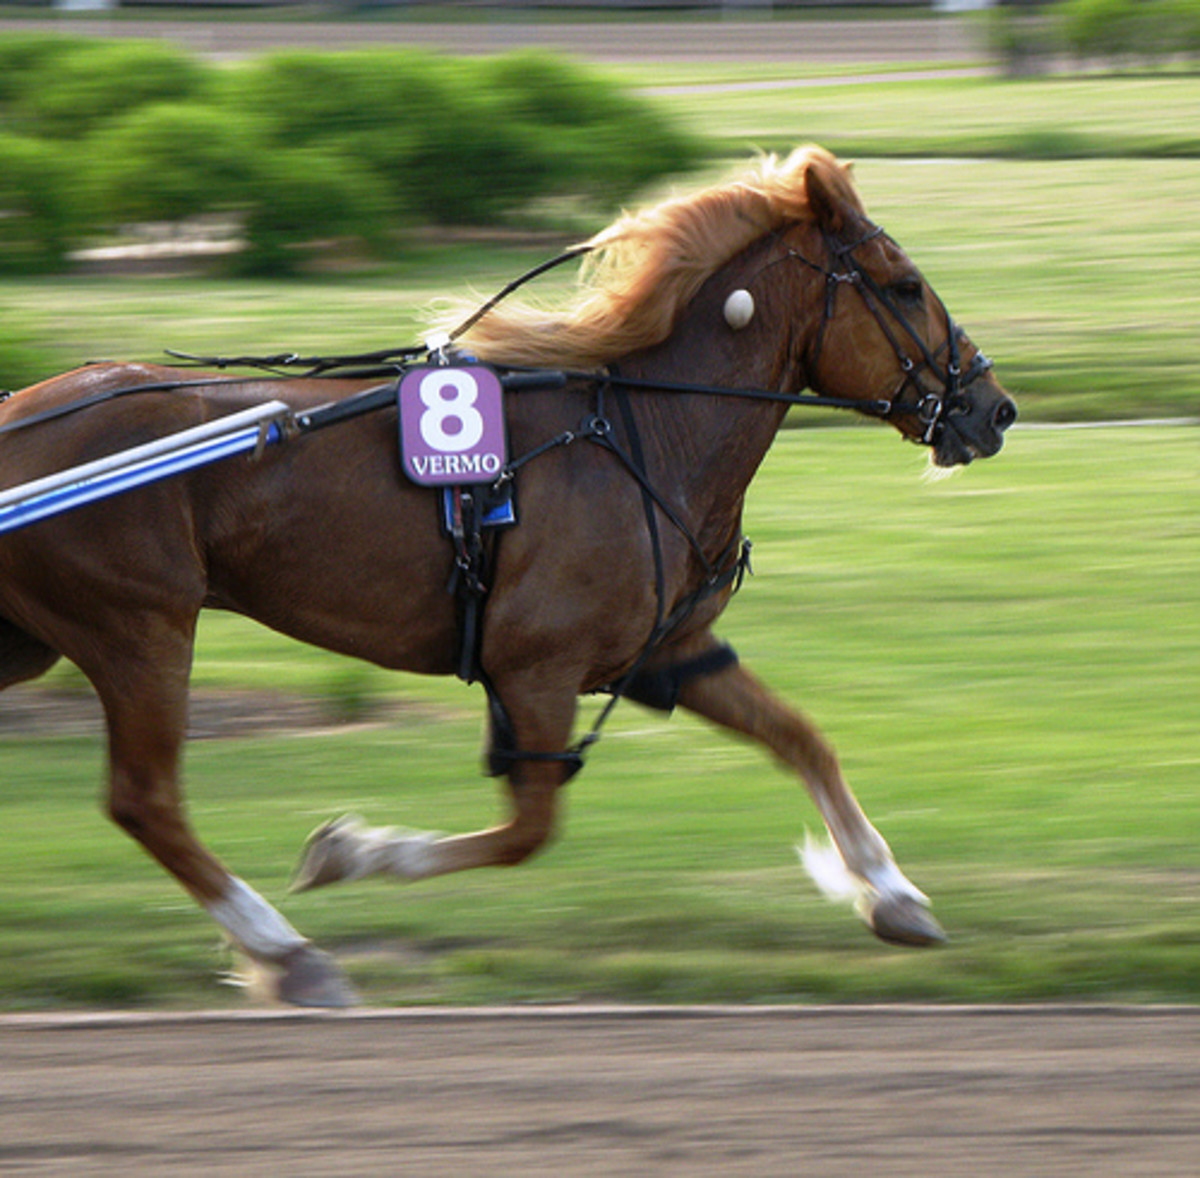 During the warm-ups, watch the horses as they pass by. You want a trotter whose front legs seem  to form a circle as they run.  A sound (healthy) horse will almost always form a natural circle when trotting at a slow pace.